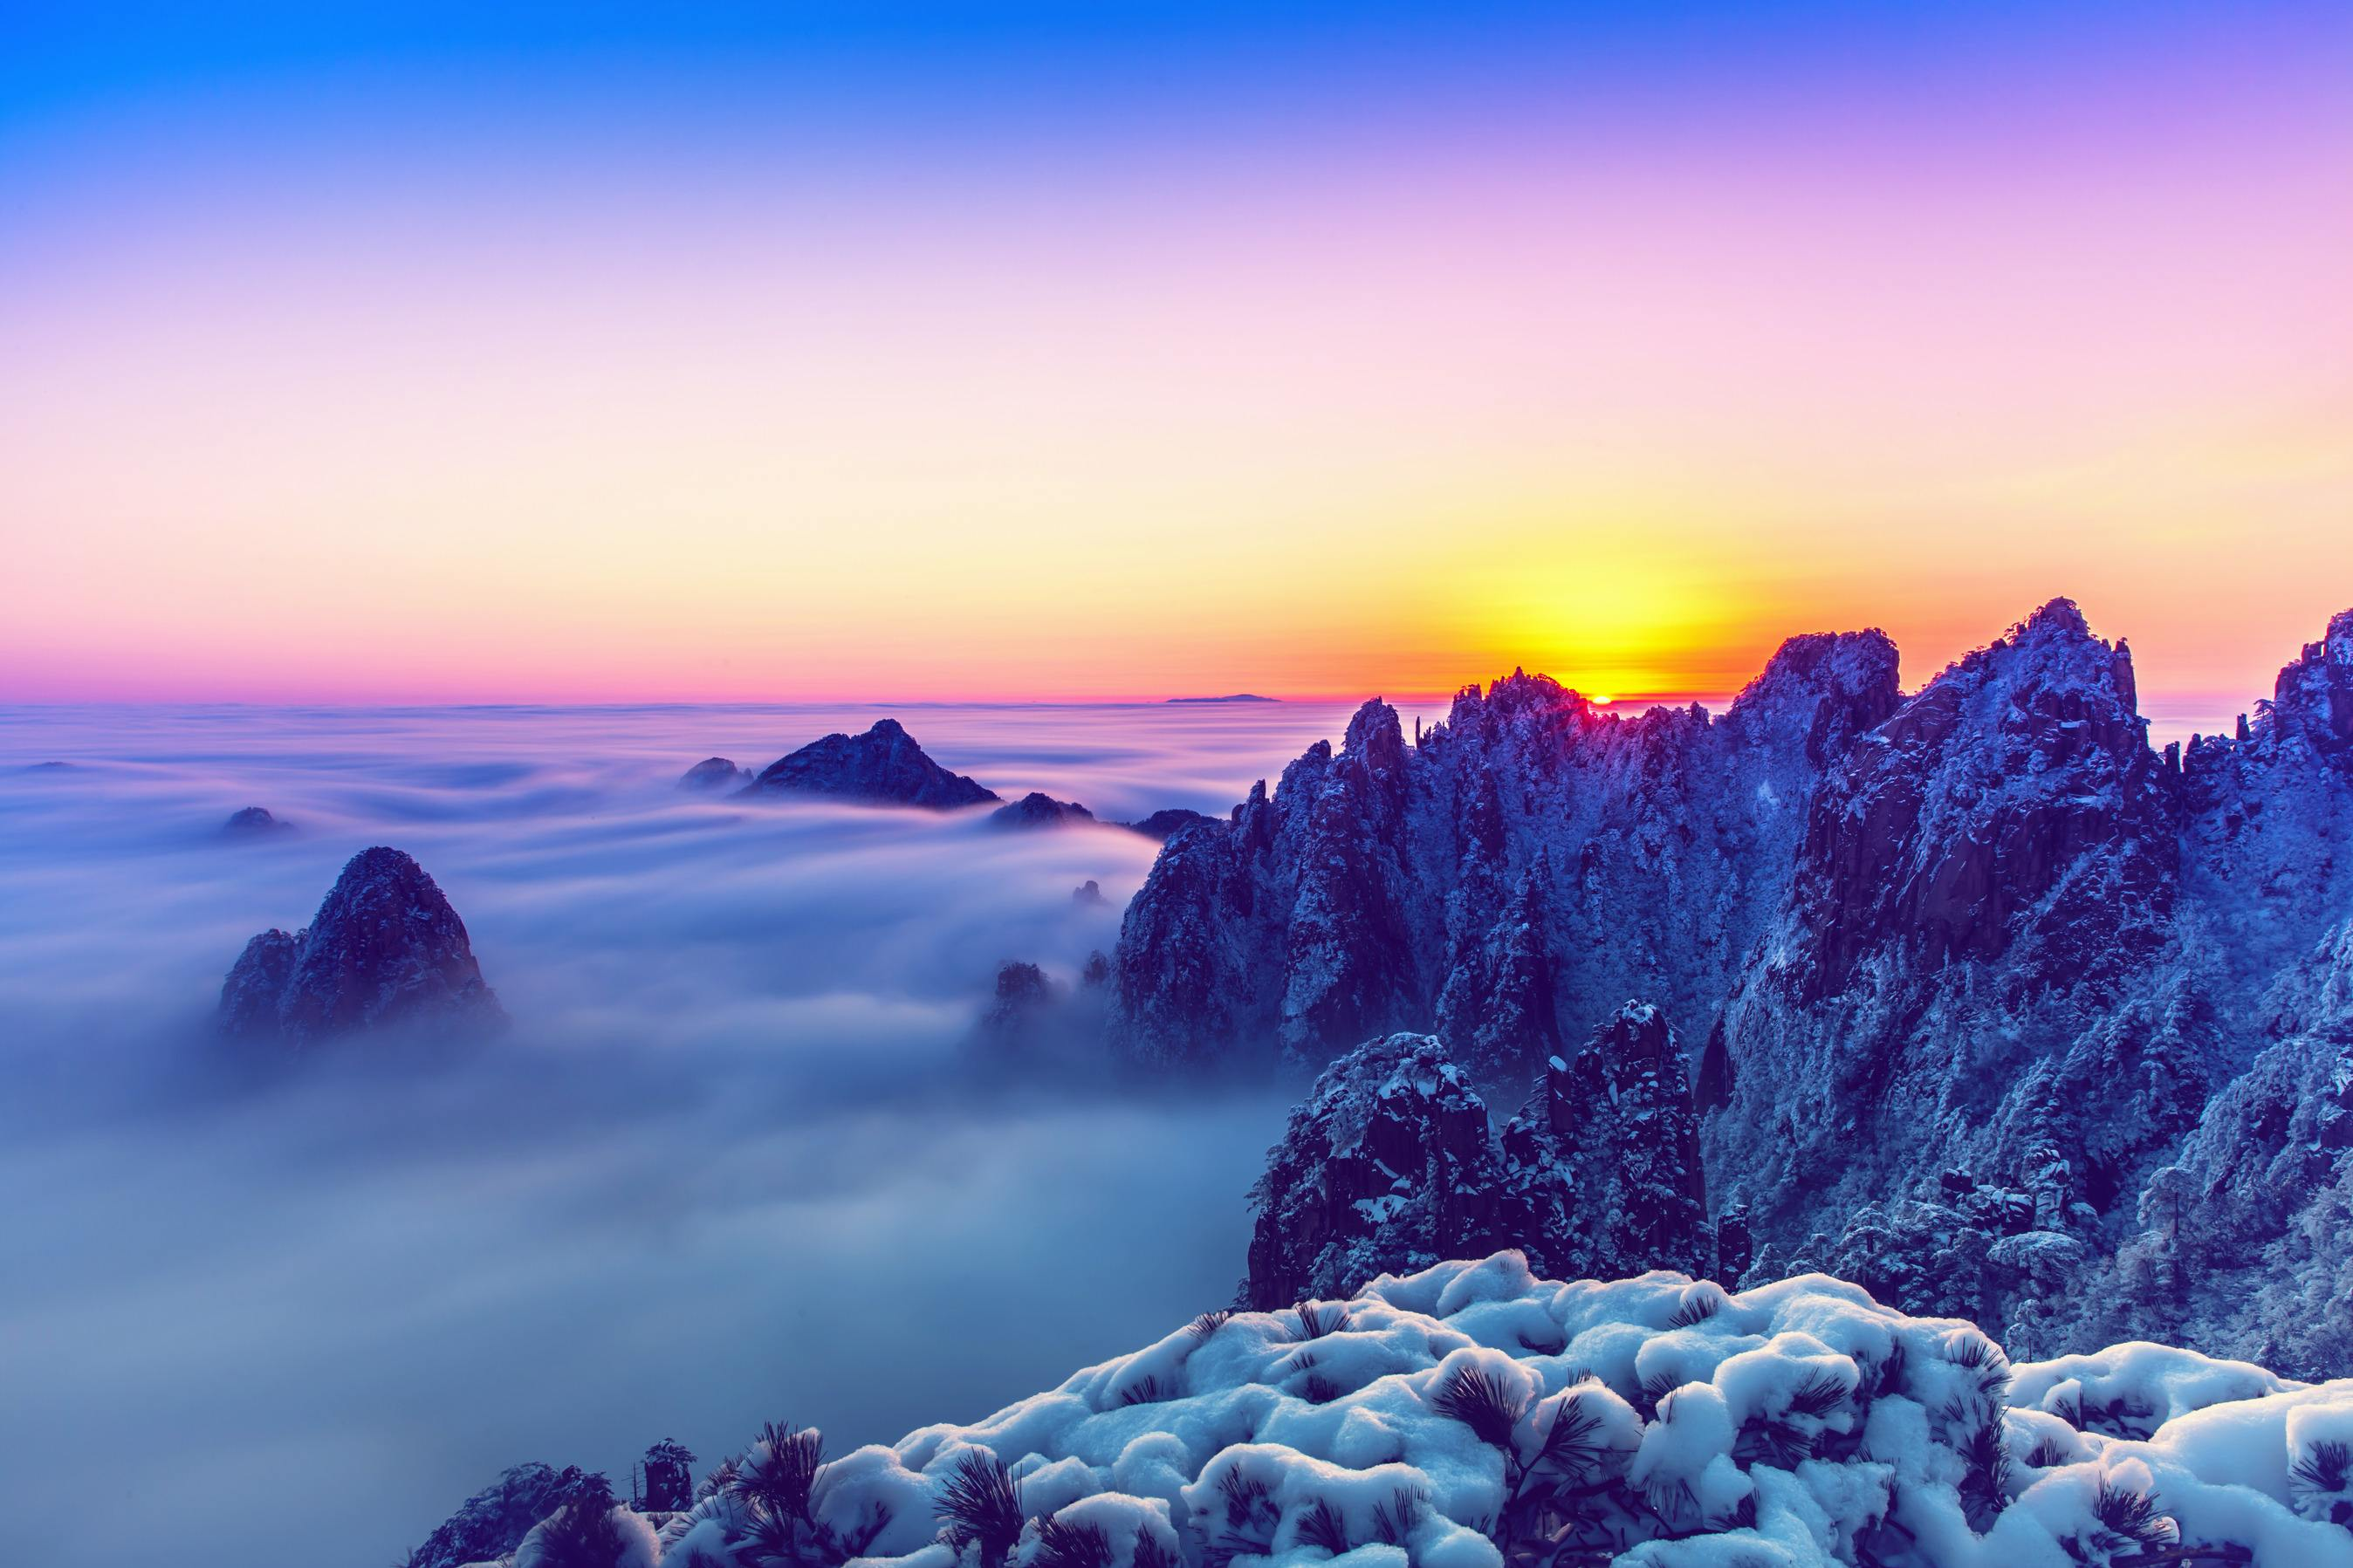 3-Day_Beijing_Huangshan_Sightseeing_Tour_with_Round-trip_High-speed_Train_1.jpg